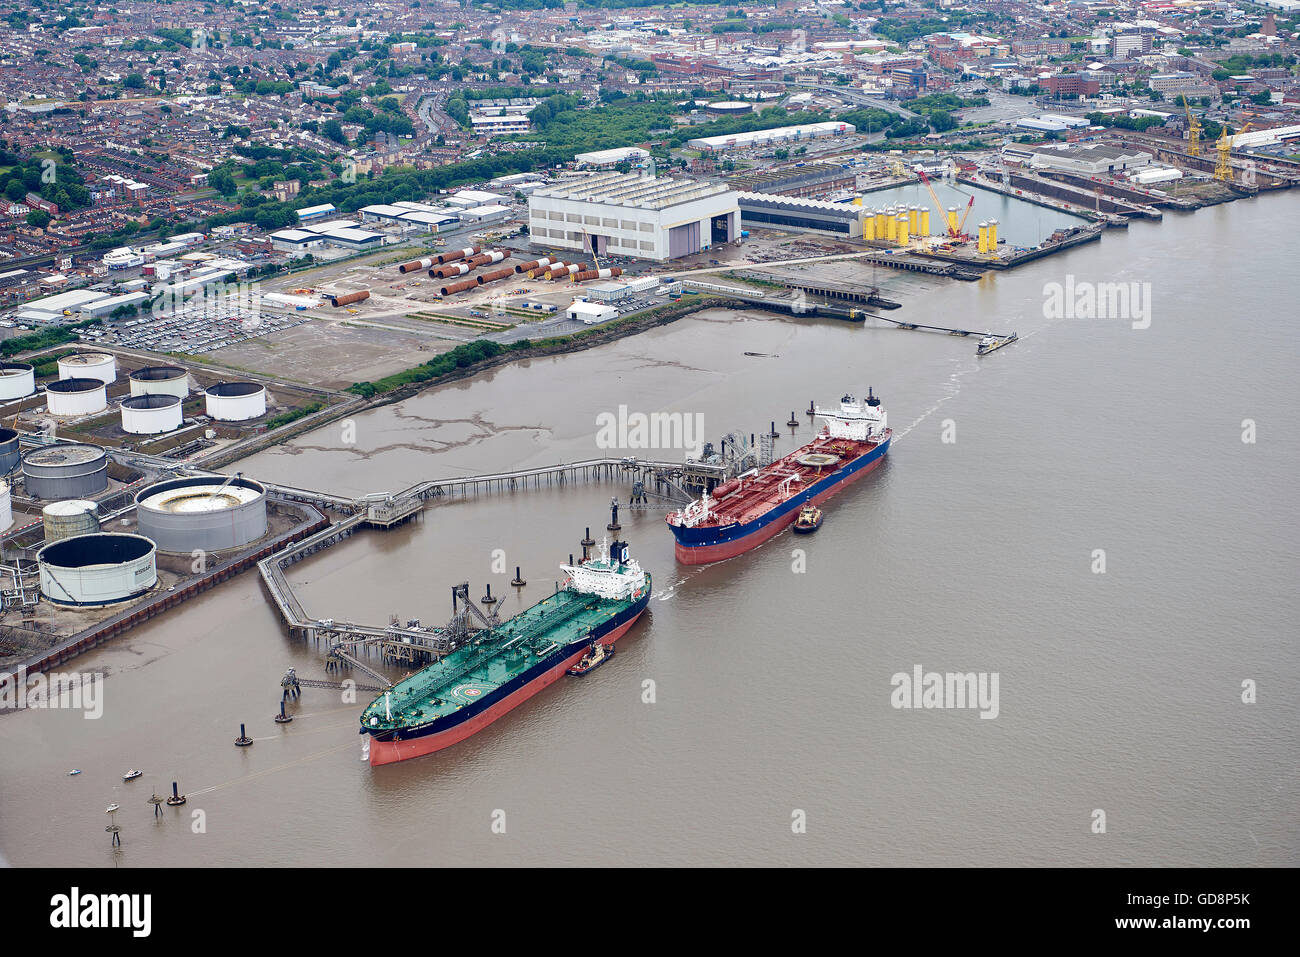 Oil tankers berthed on the side of the river Mersey, Birkenhead, North West England - Stock Image